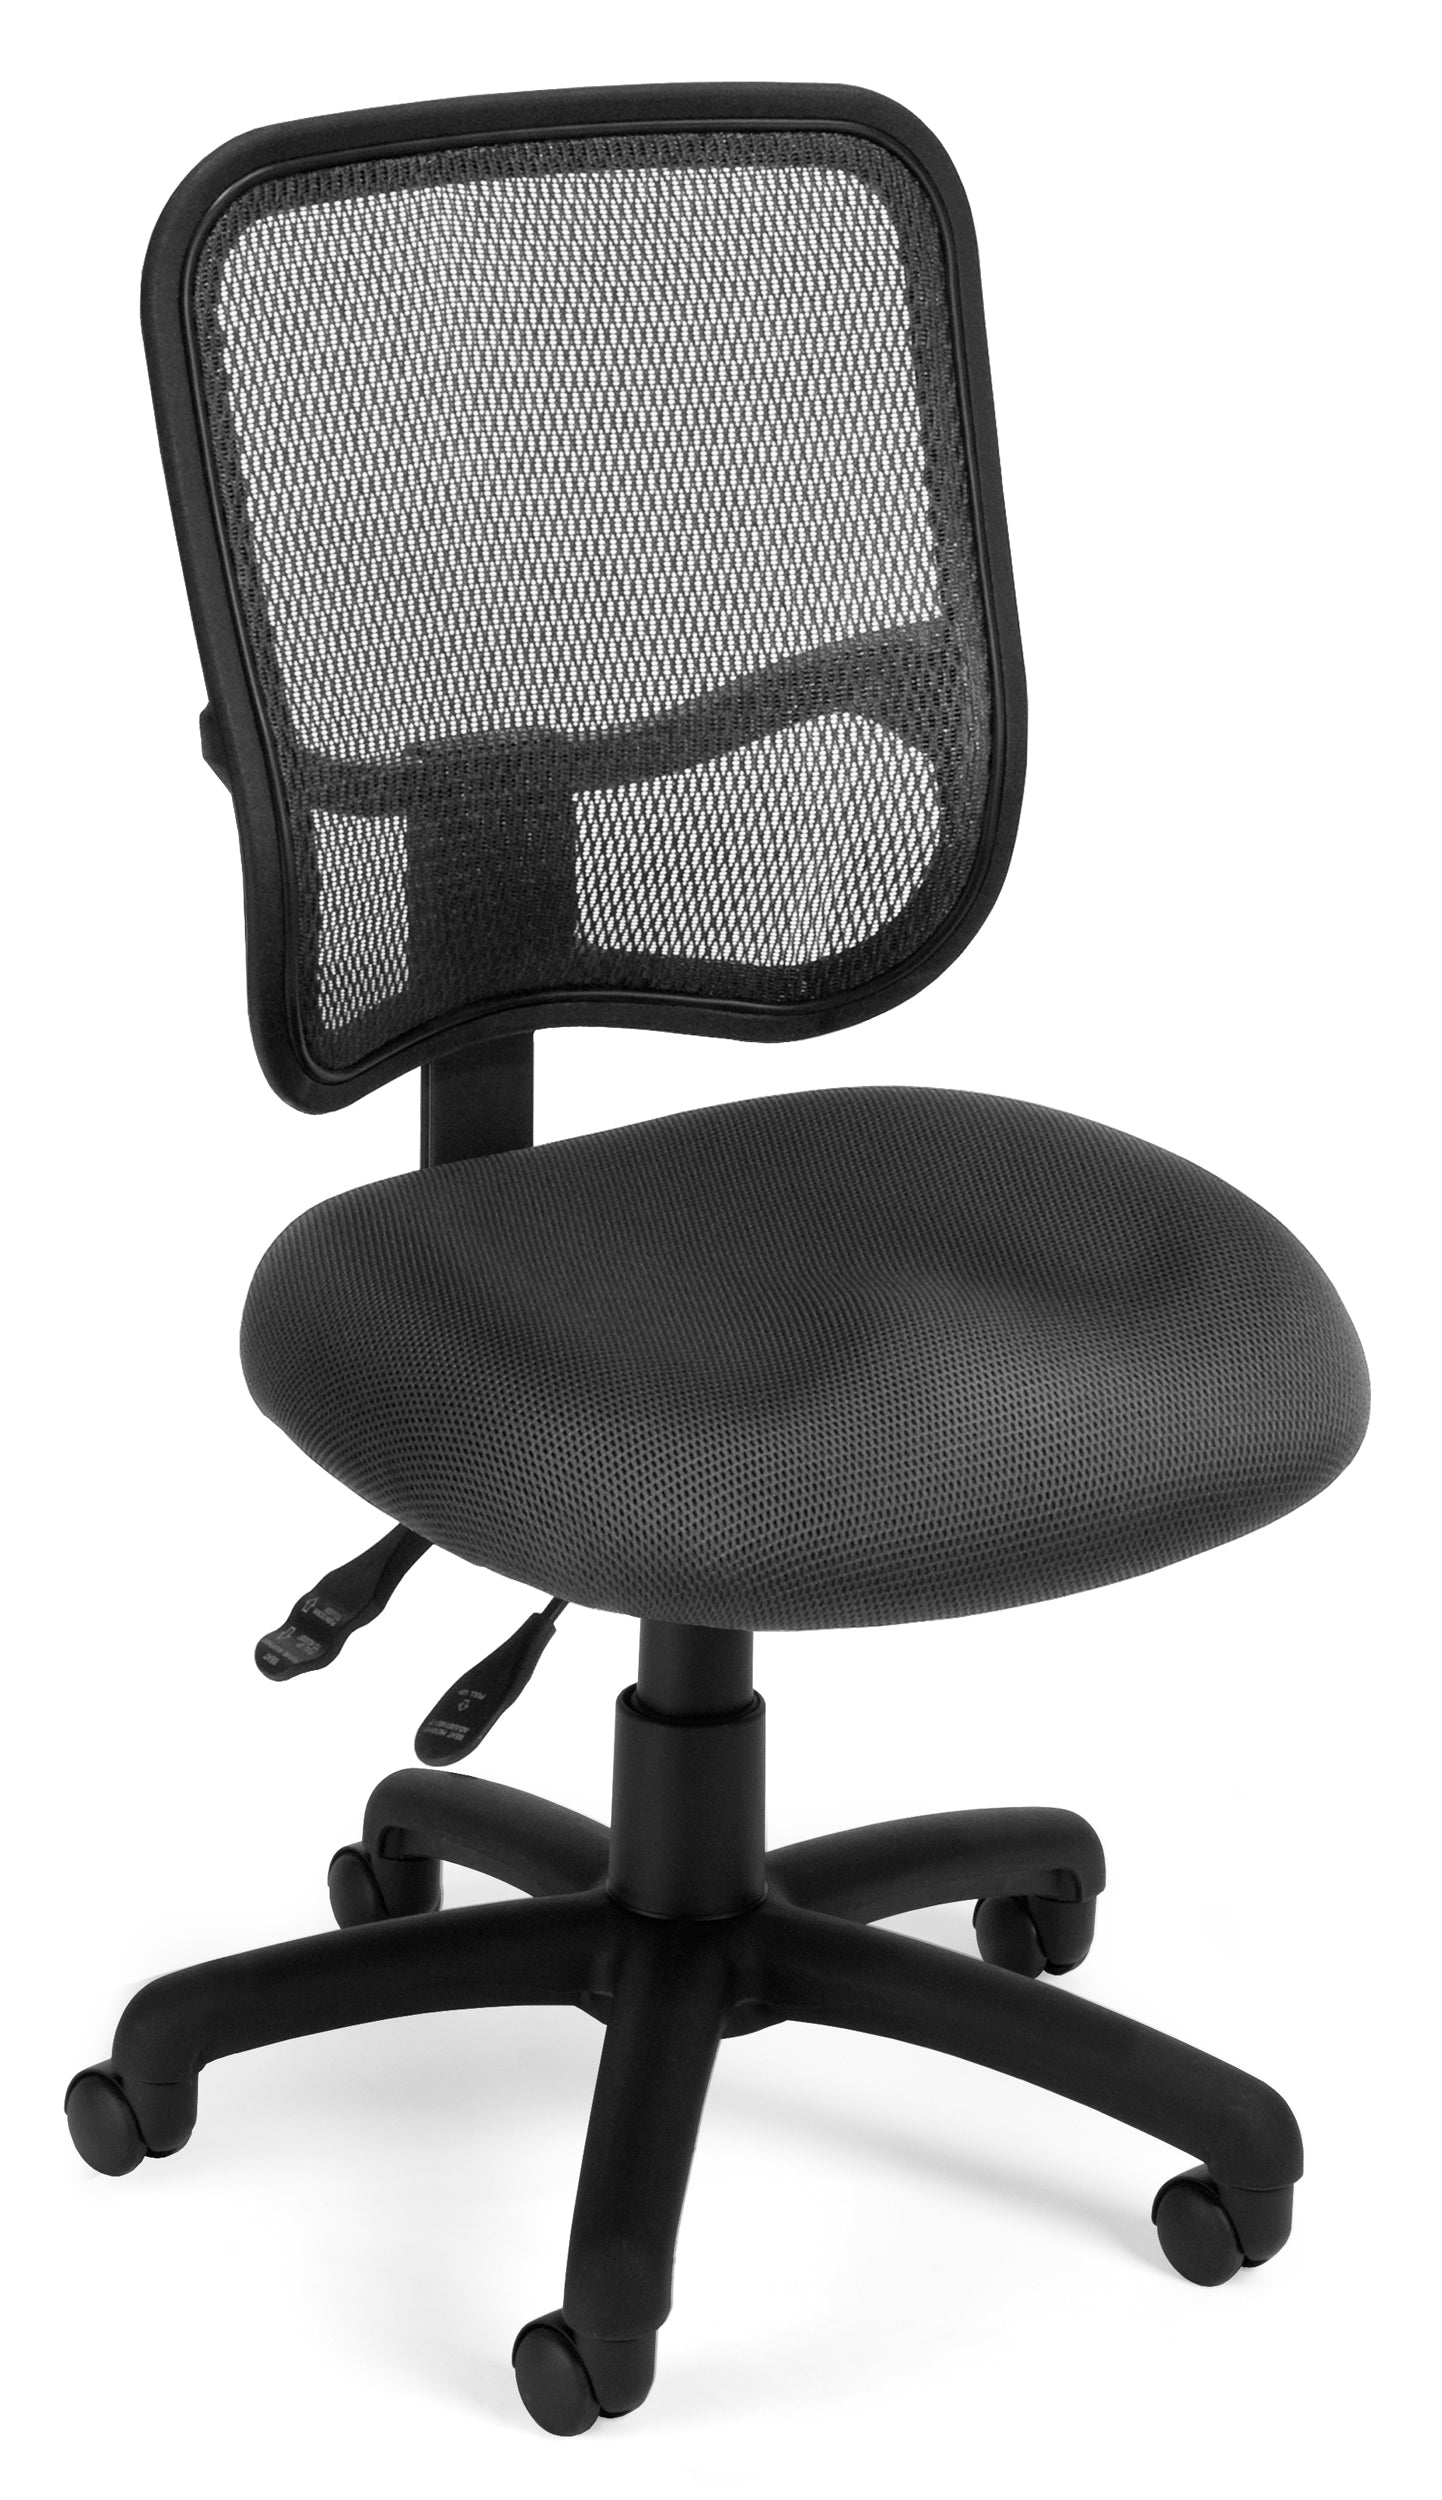 Model 130 Comfort Series Ergonomic Mesh Swivel Armless Task Chair